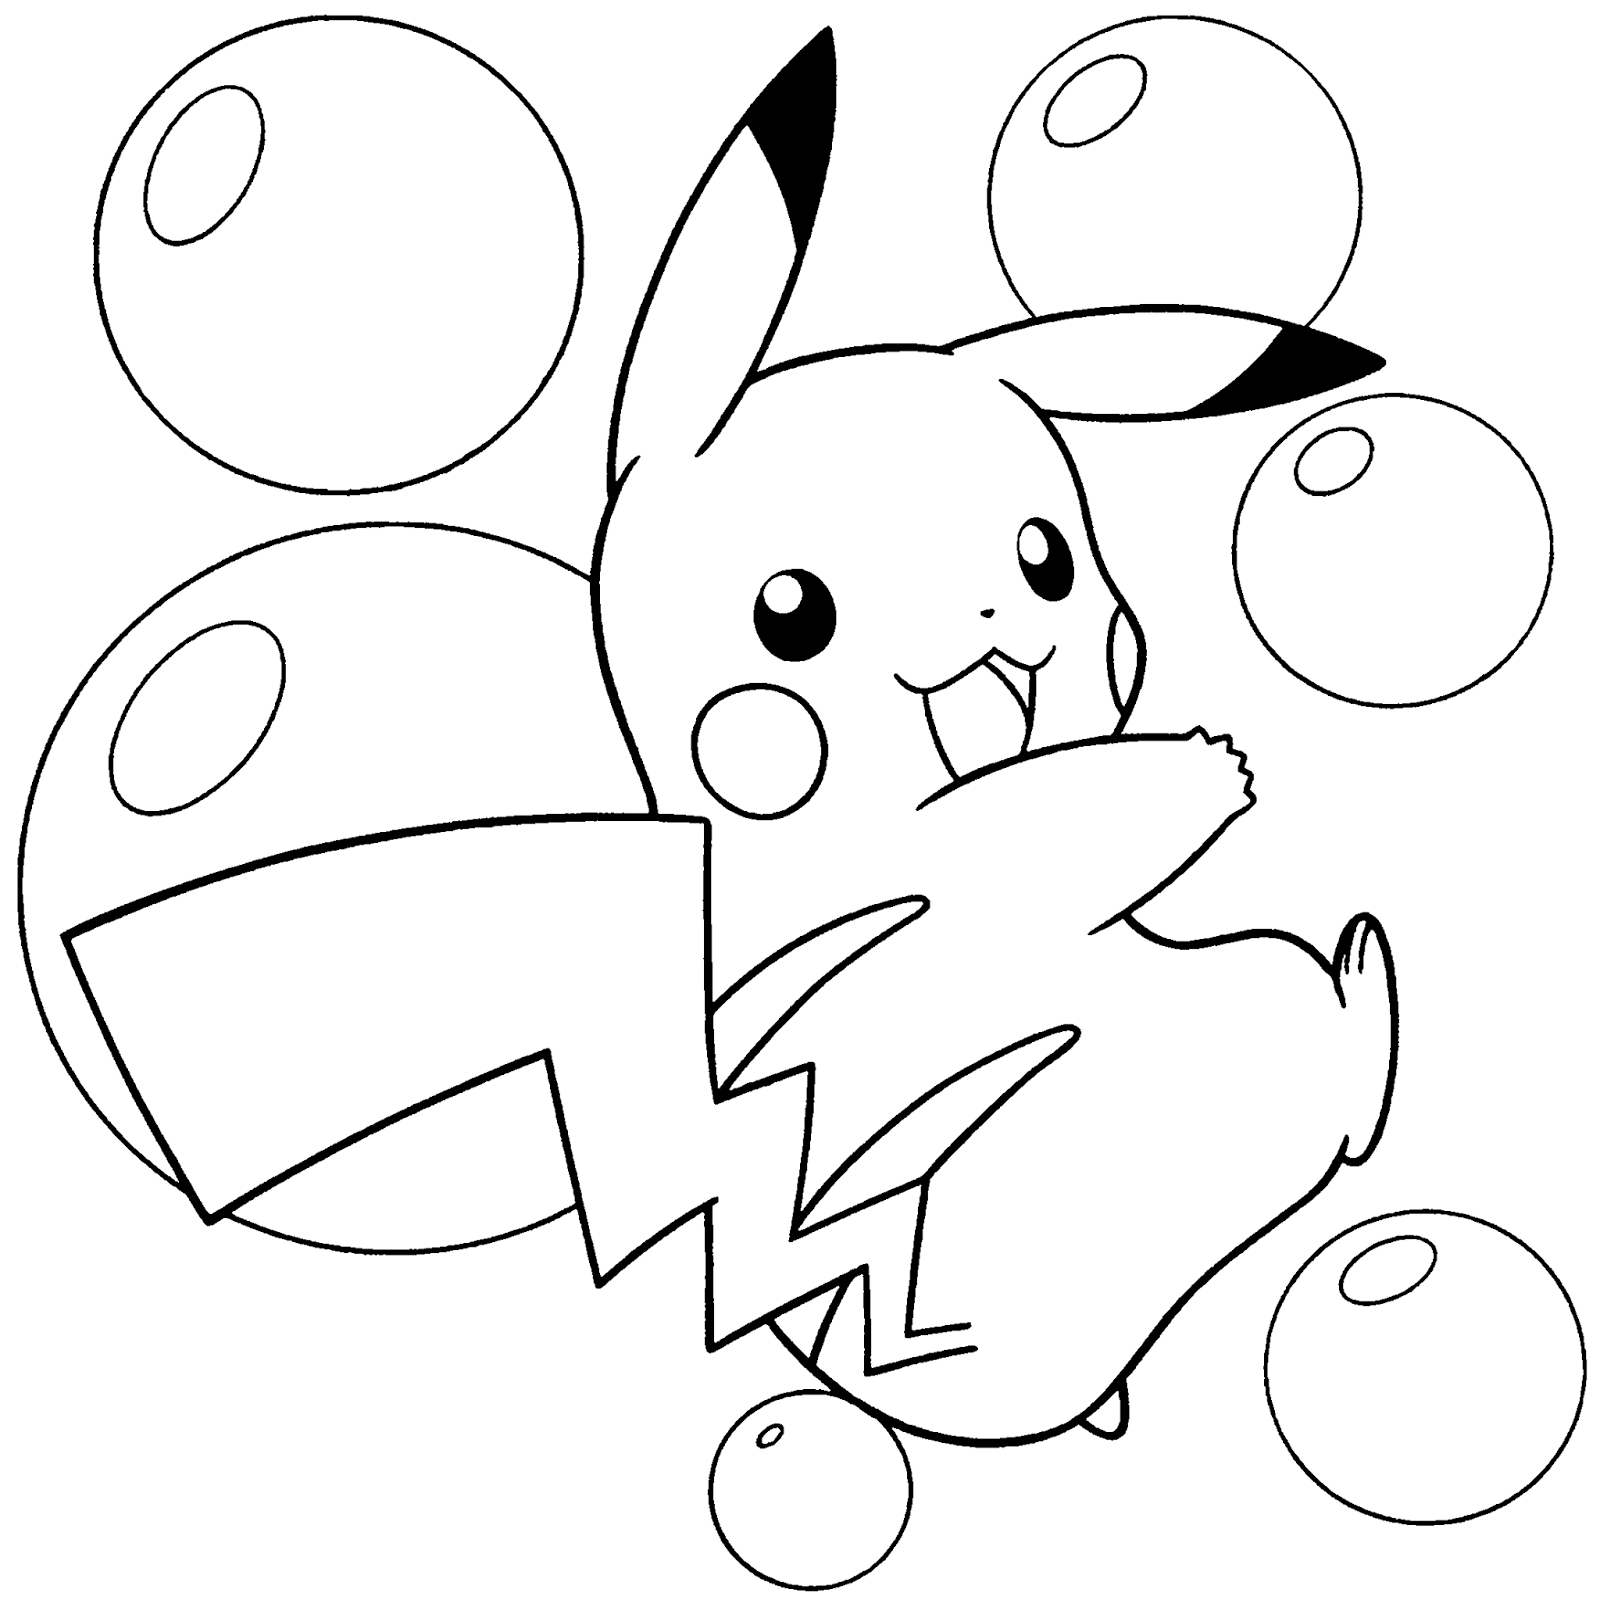 coloring pokemon pokemon coloring pages for kids pokemon coloring